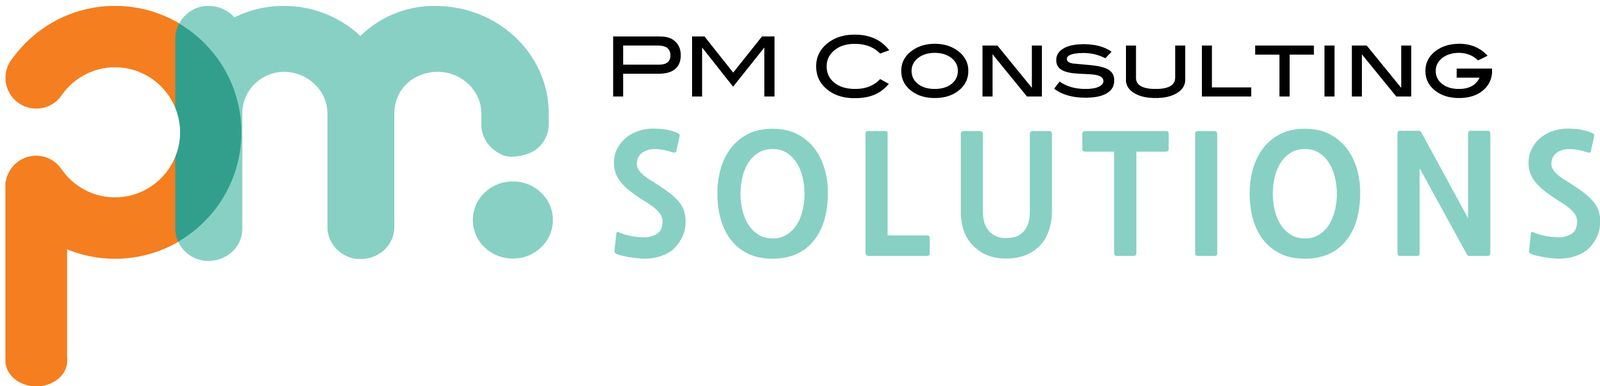 Pm Consulting Solutions